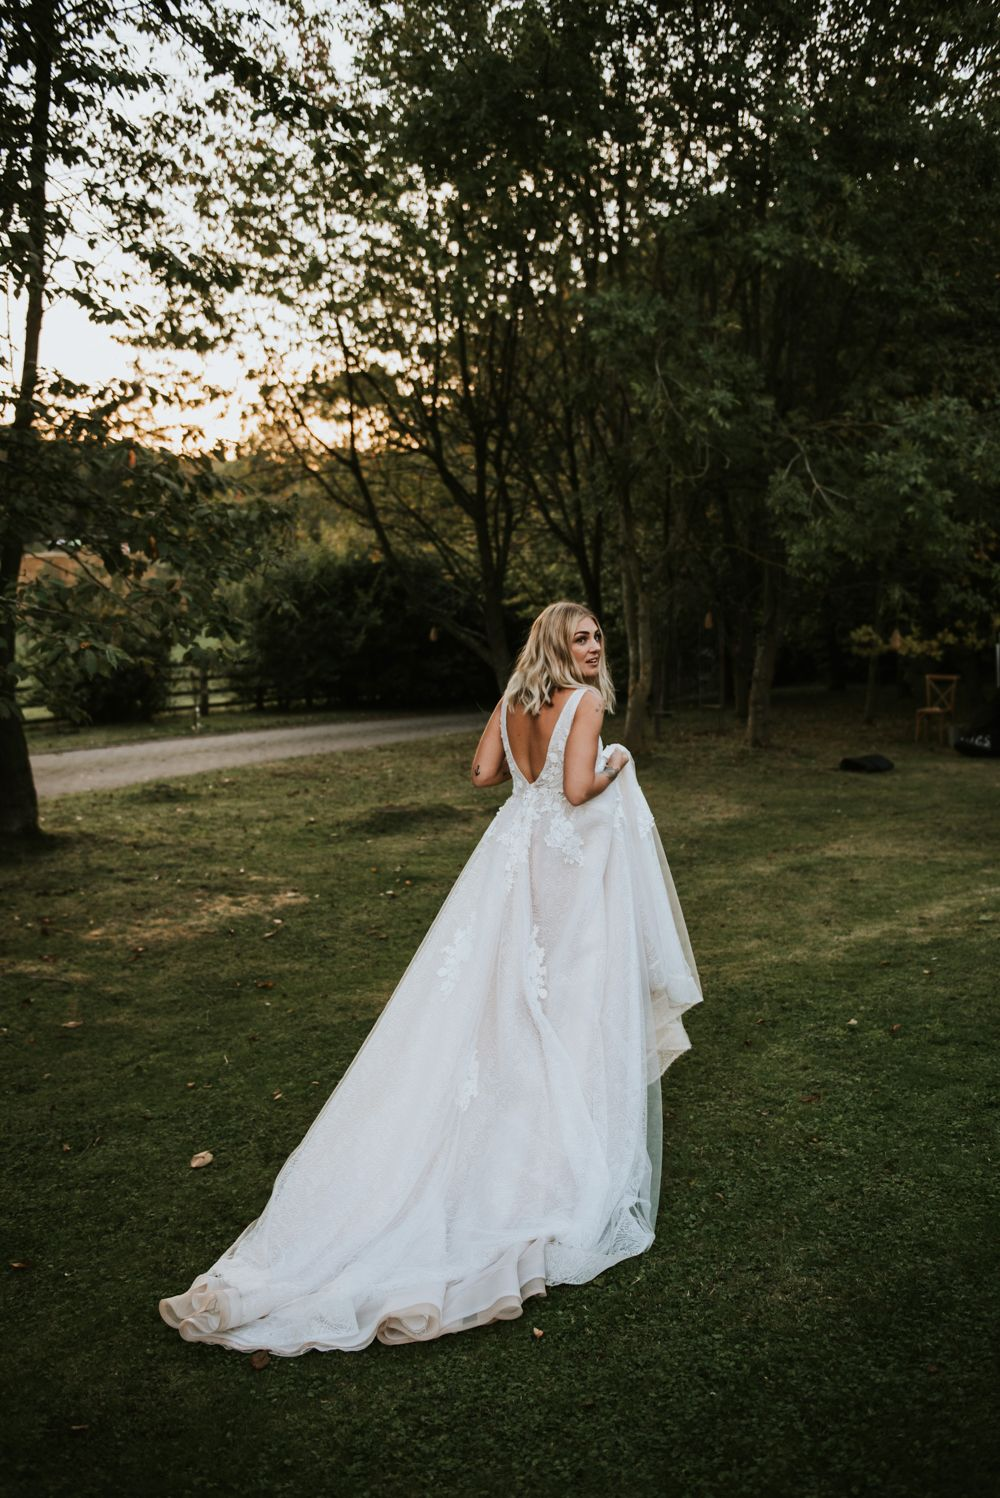 Bridal goals - The Copse Wedding Venue - Rosie Kelly Photography